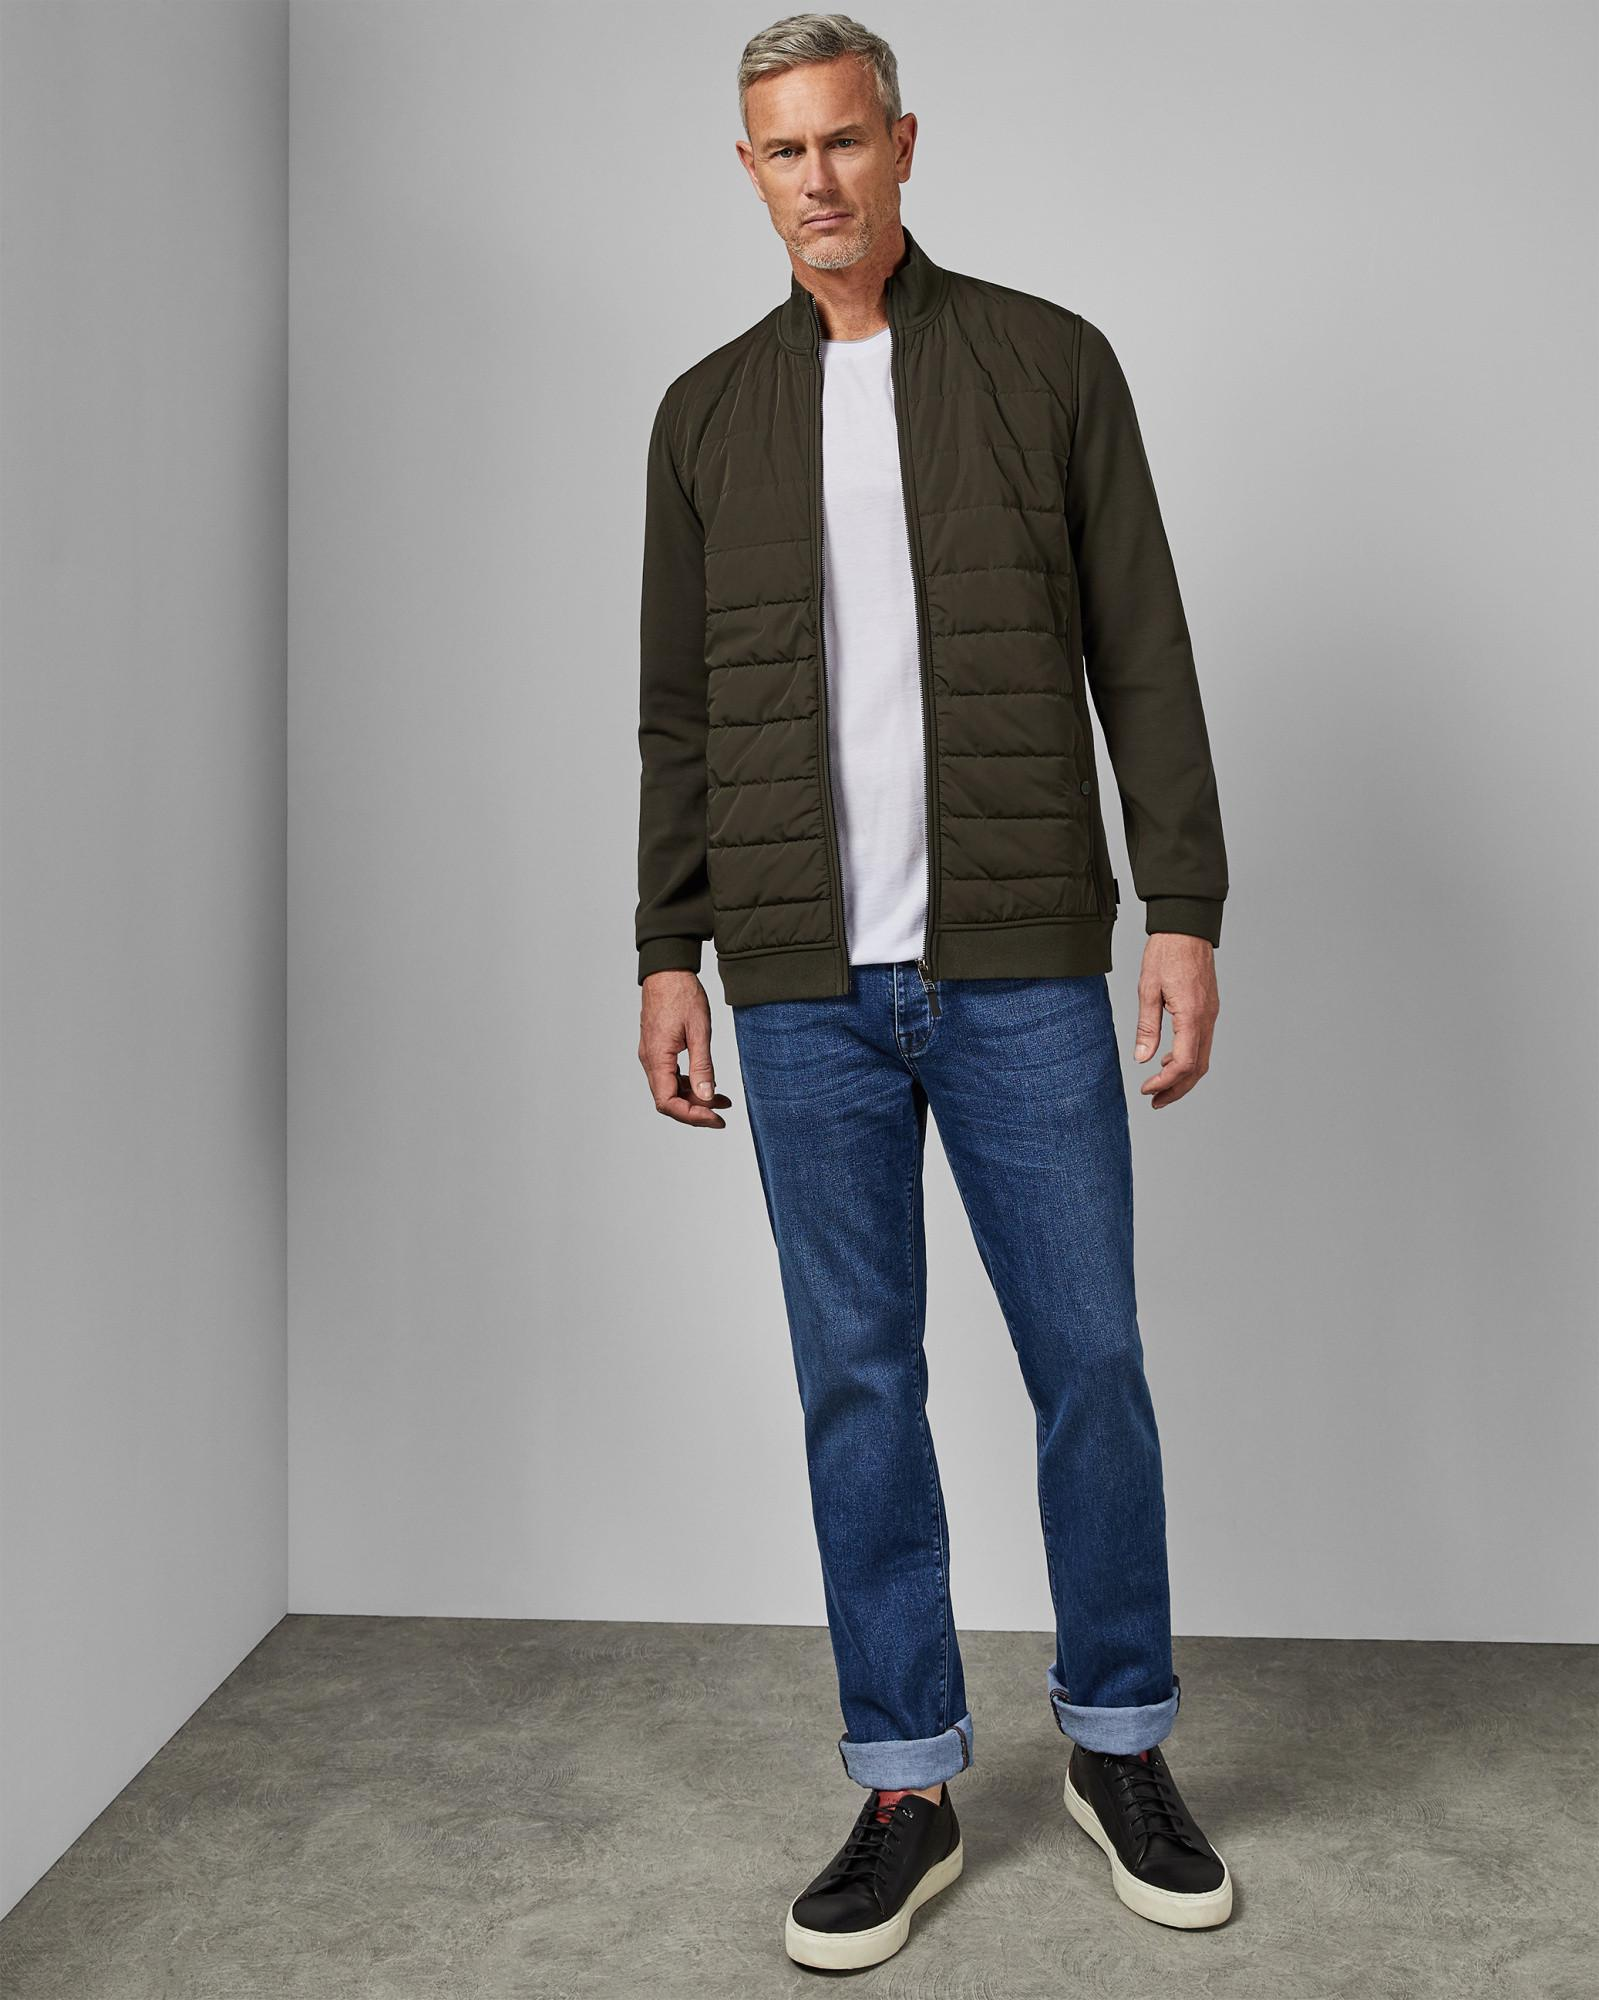 4aba89120 Lyst - Ted Baker Tall Quilted Funnel Neck Jacket for Men